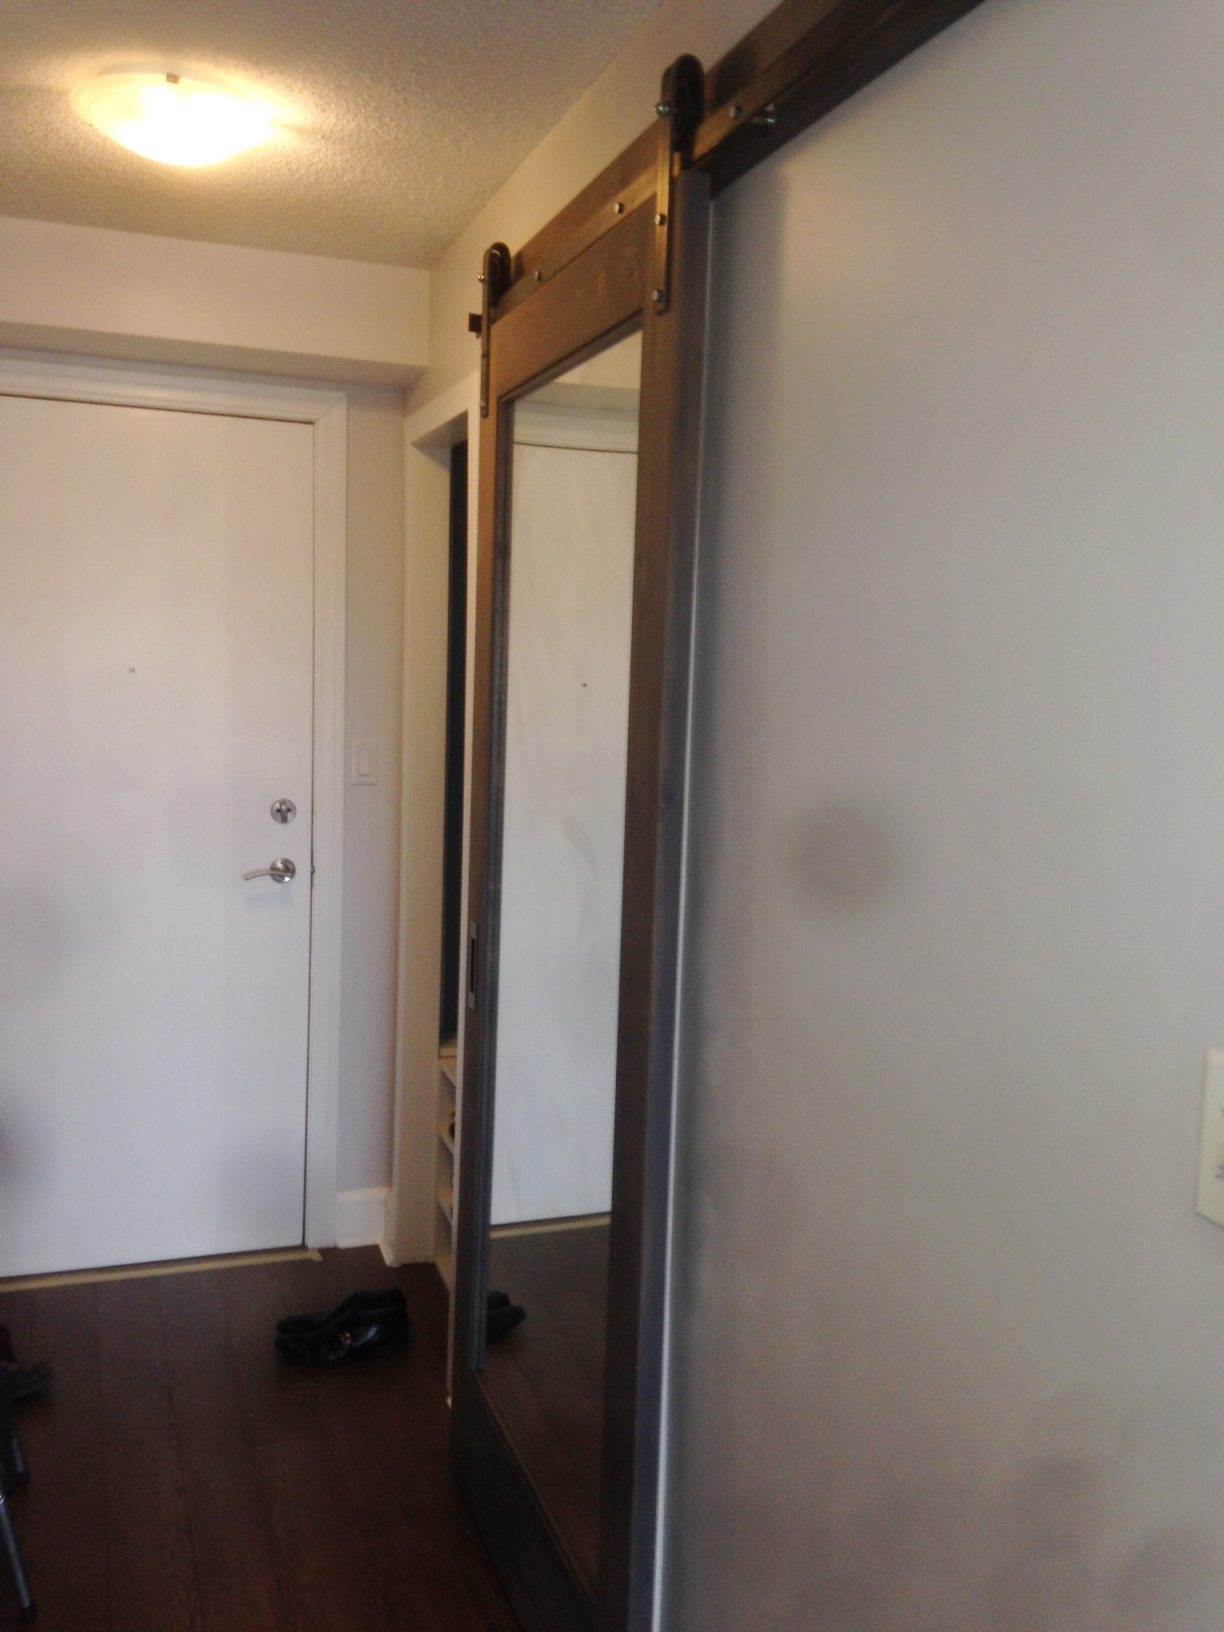 Because our client does not have a full length mirror in the condo, they thought it would work out nicely if the bathroom is sliding barn door mirror. And so we made it happen.